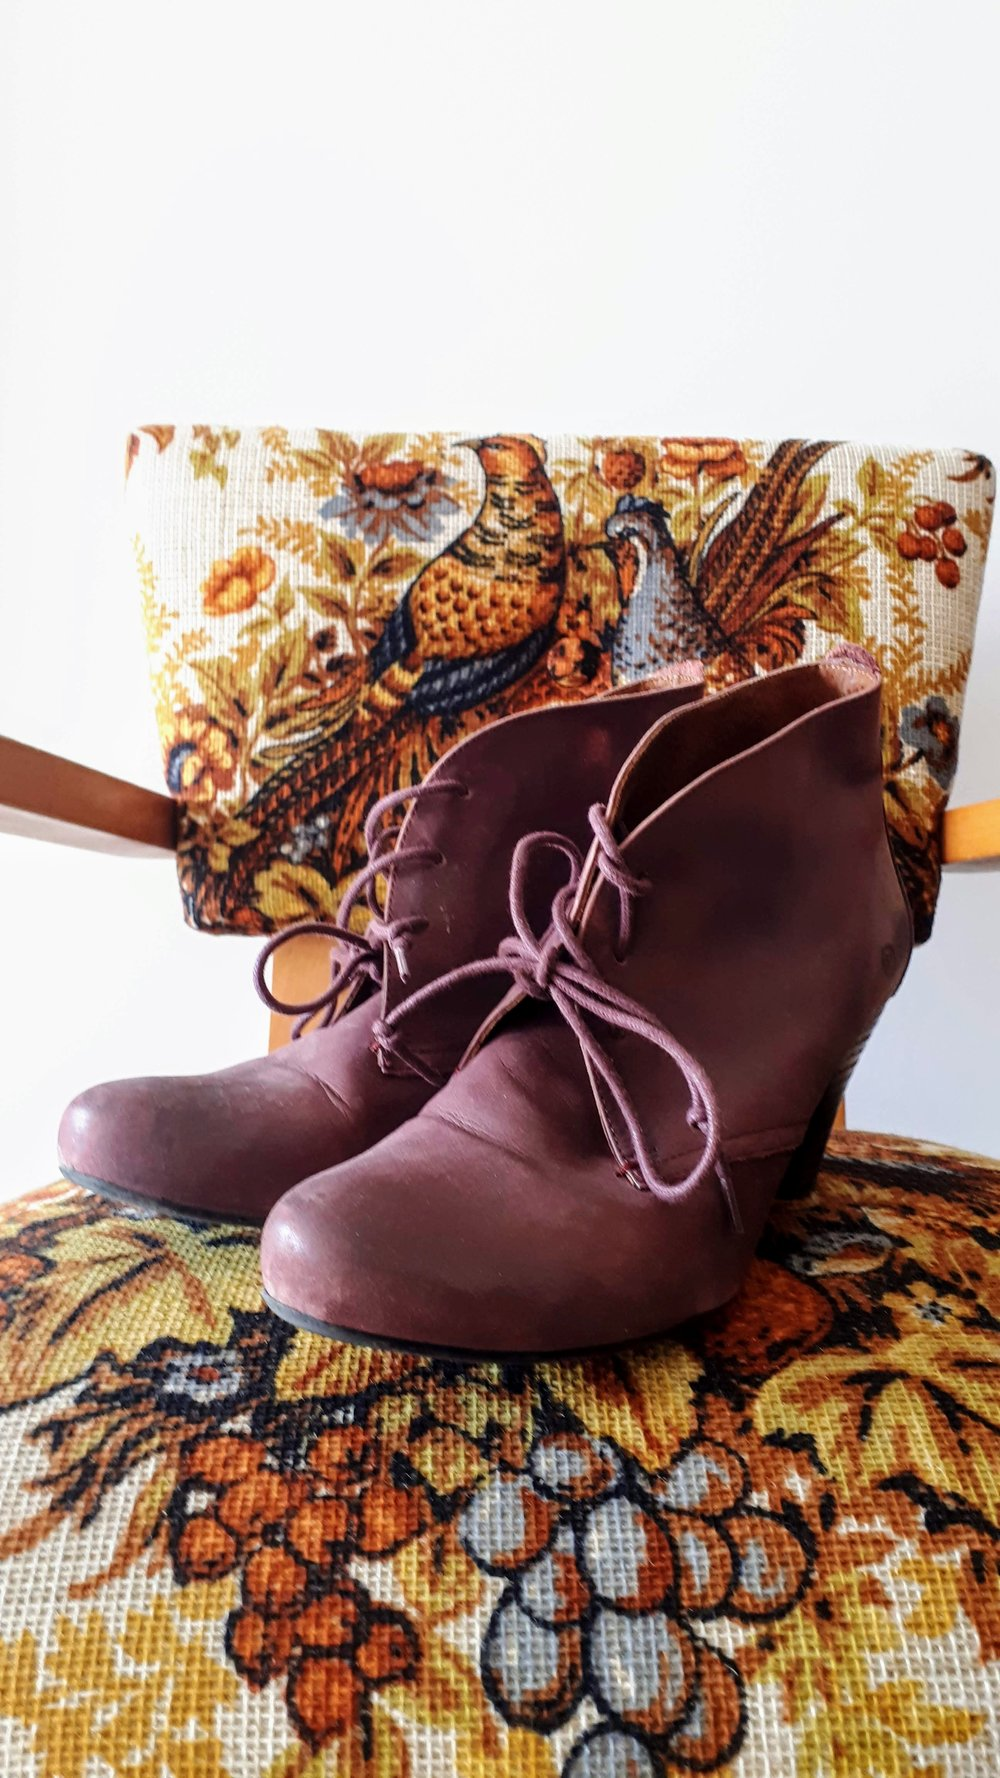 Sixtyseven boots; S7, $48